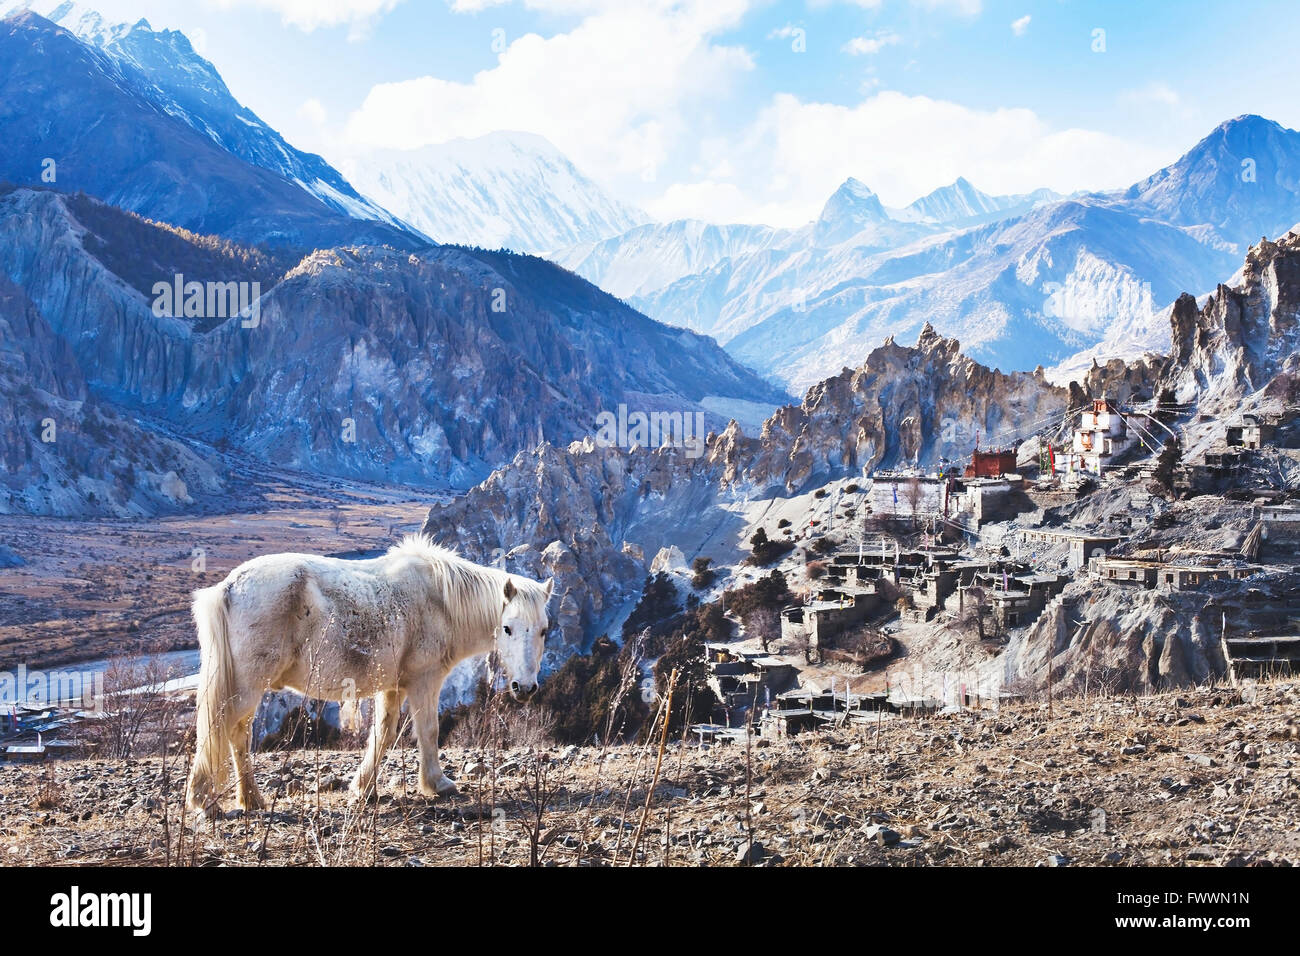 beautiful landscape from Nepal, Tibet, white horse and Himalayan mountains, Annapurna circuit - Stock Image